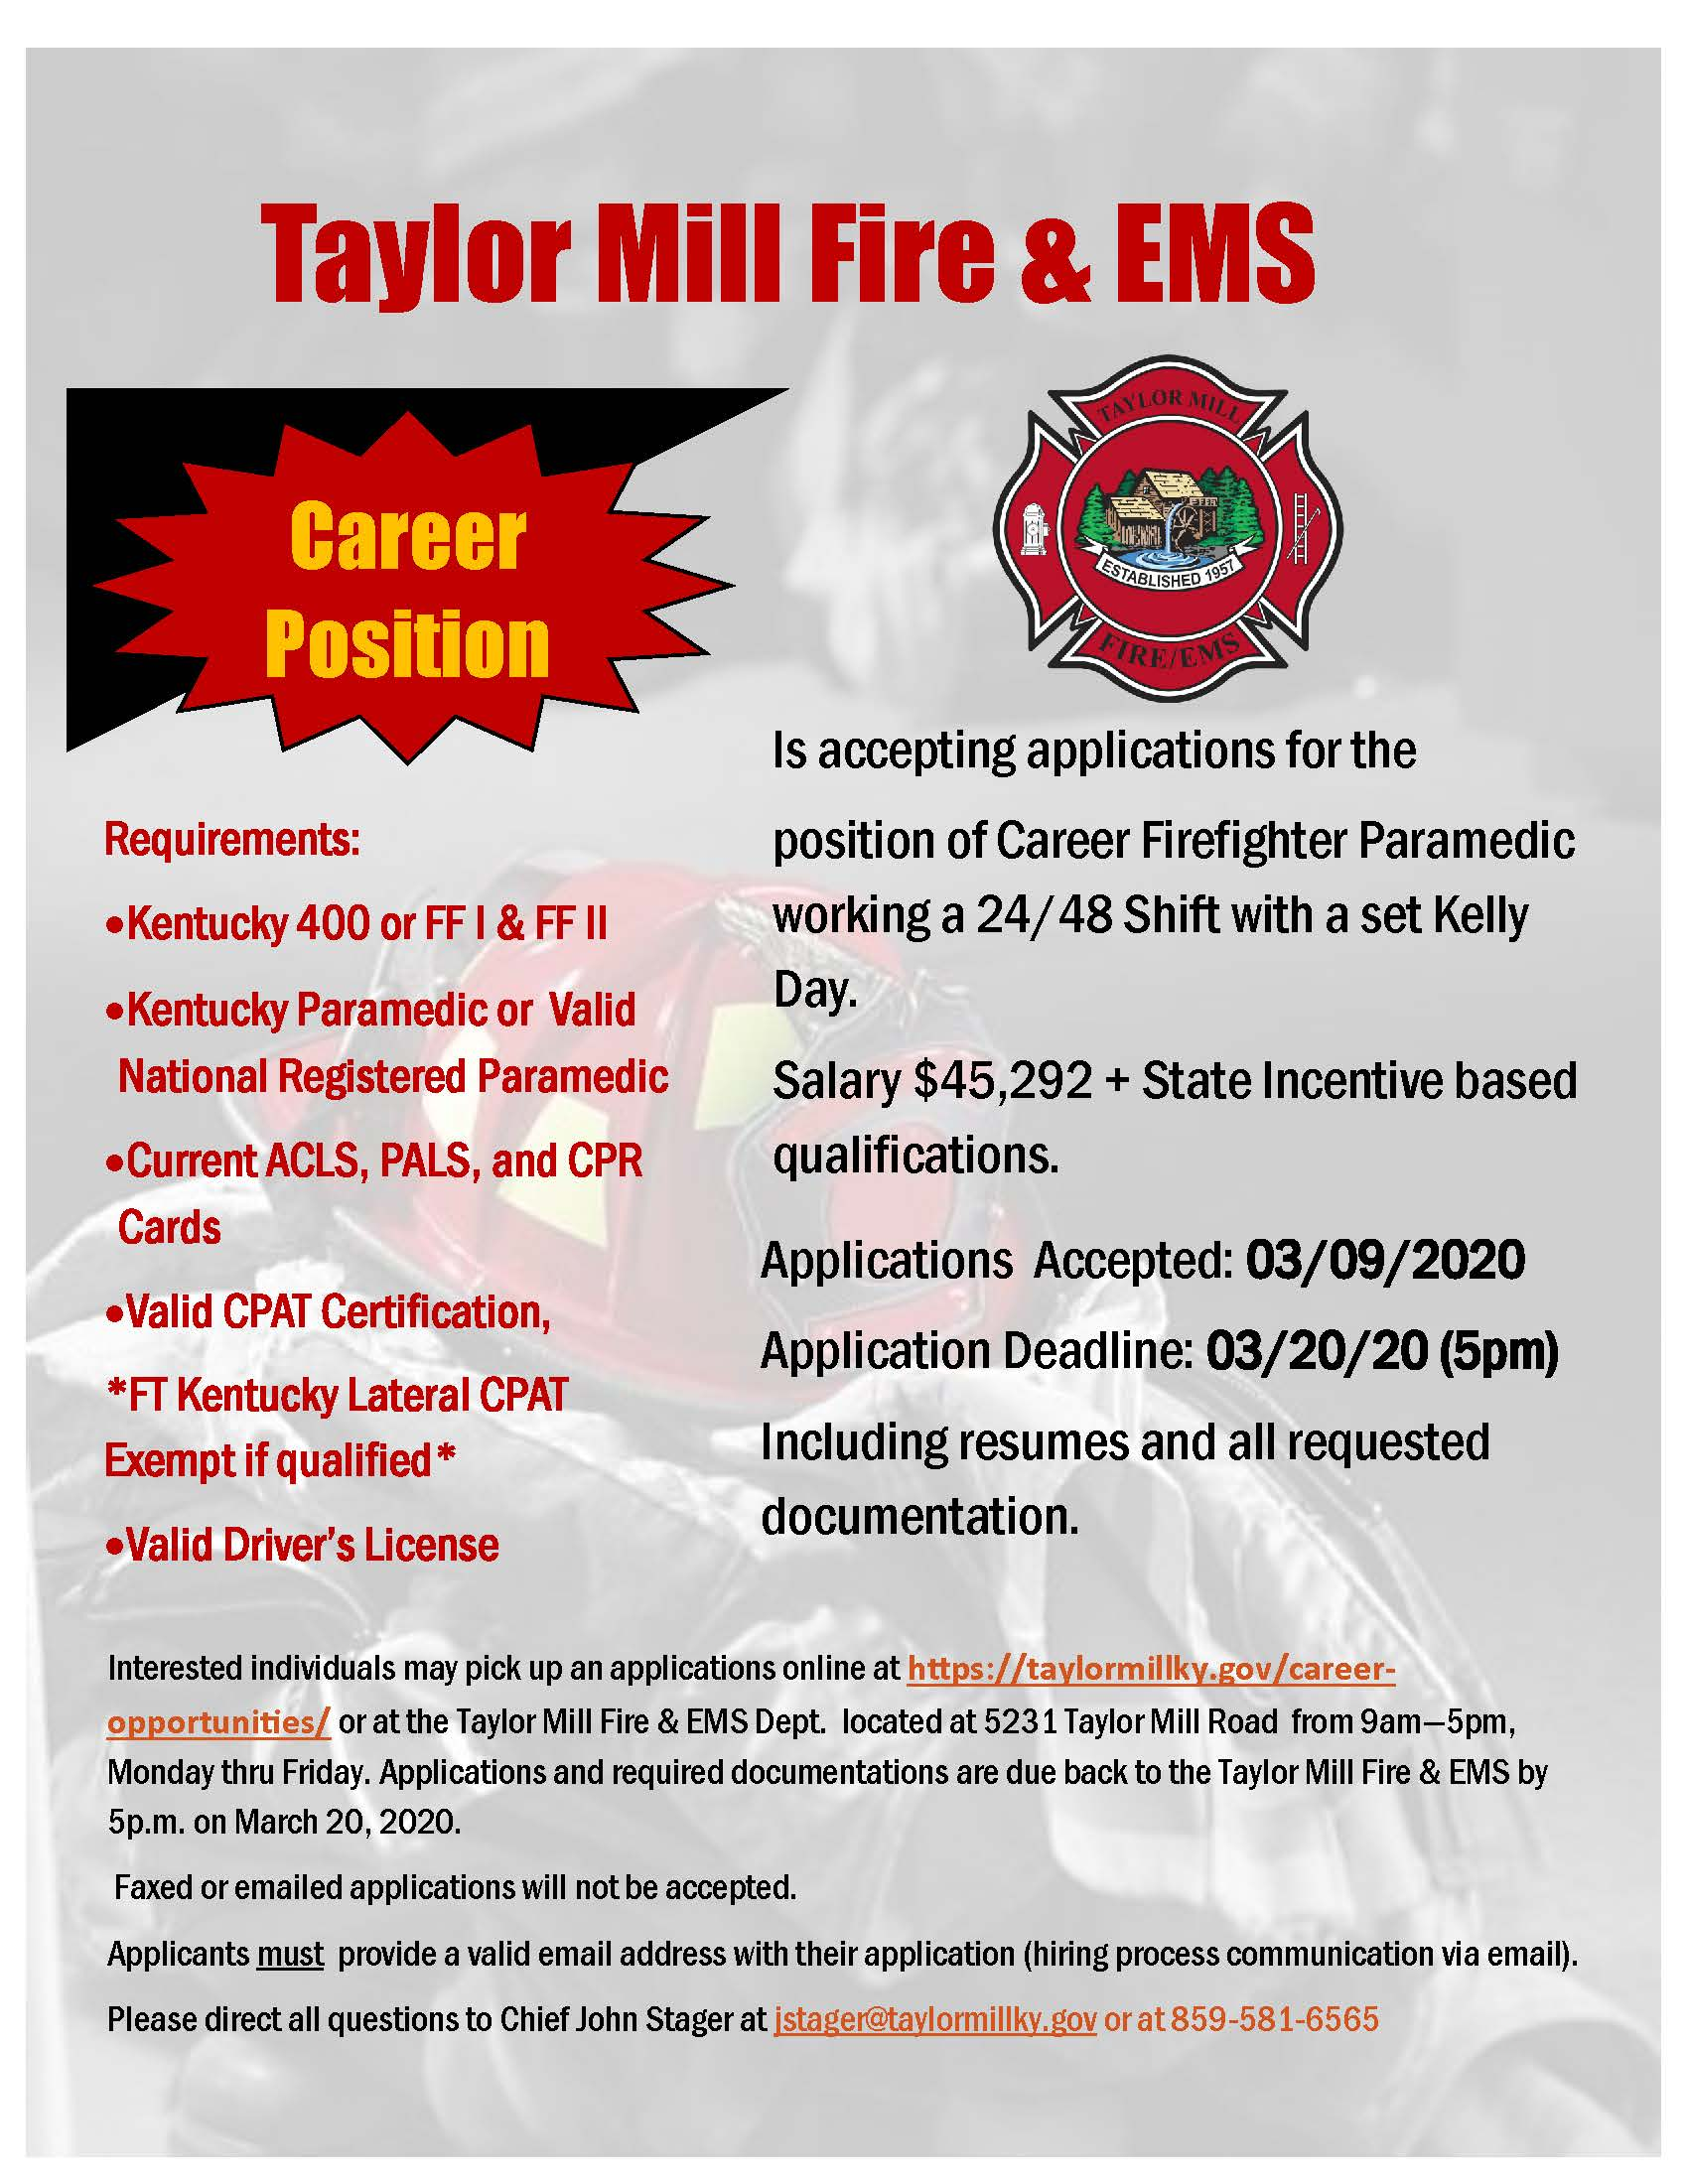 Taylor Mill Fire Department Hiring Full Time Firefighter/Paramedic